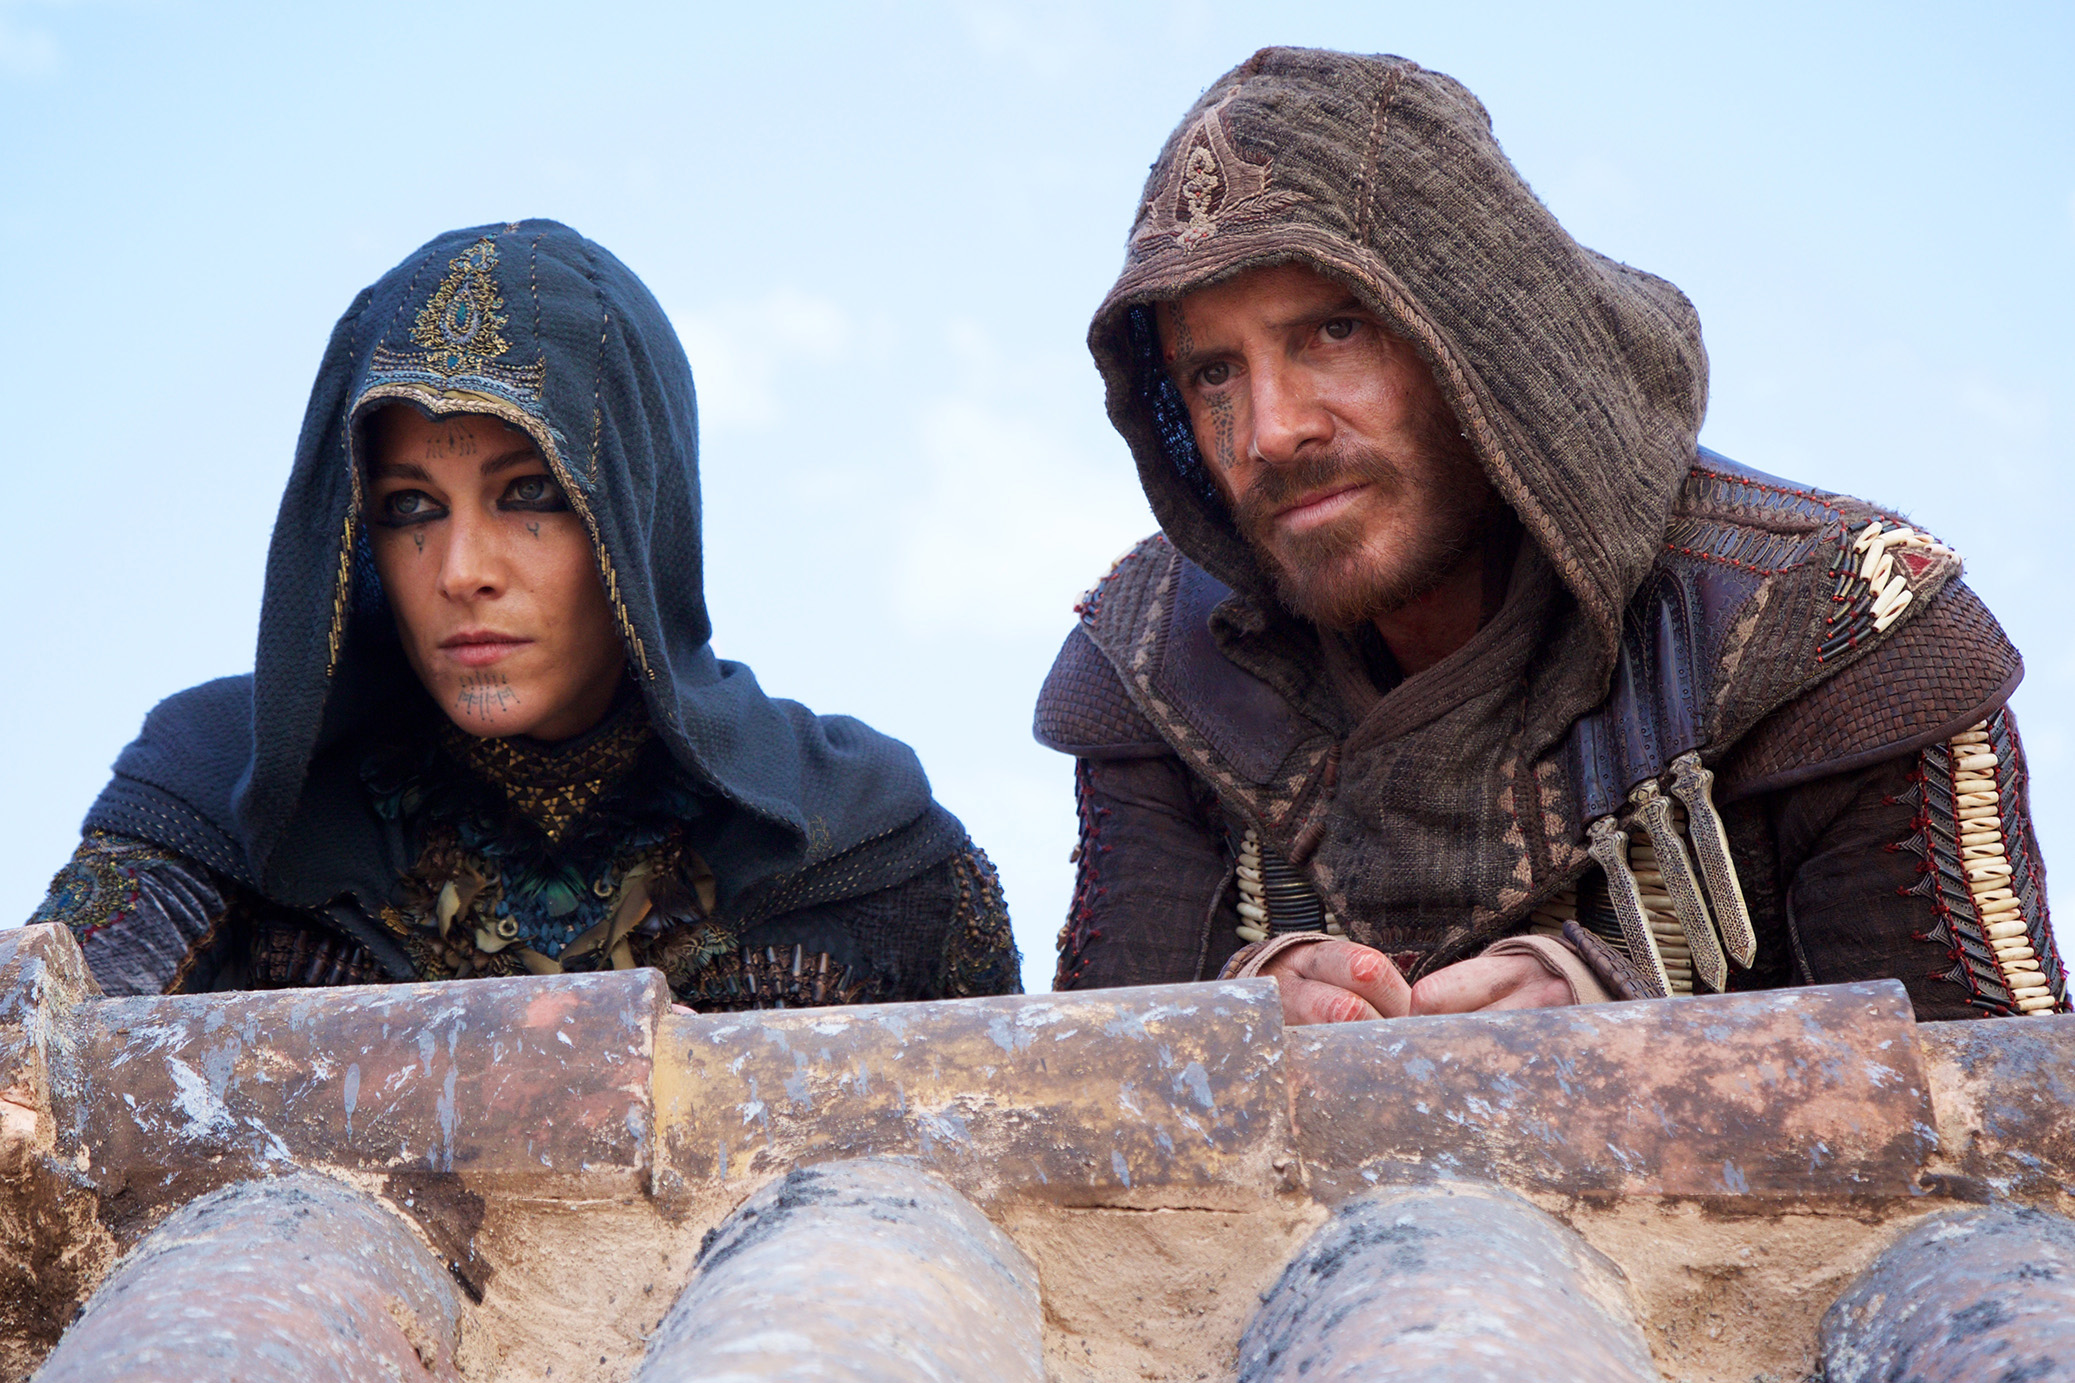 The trailer for the Assassin's Creed movie is here